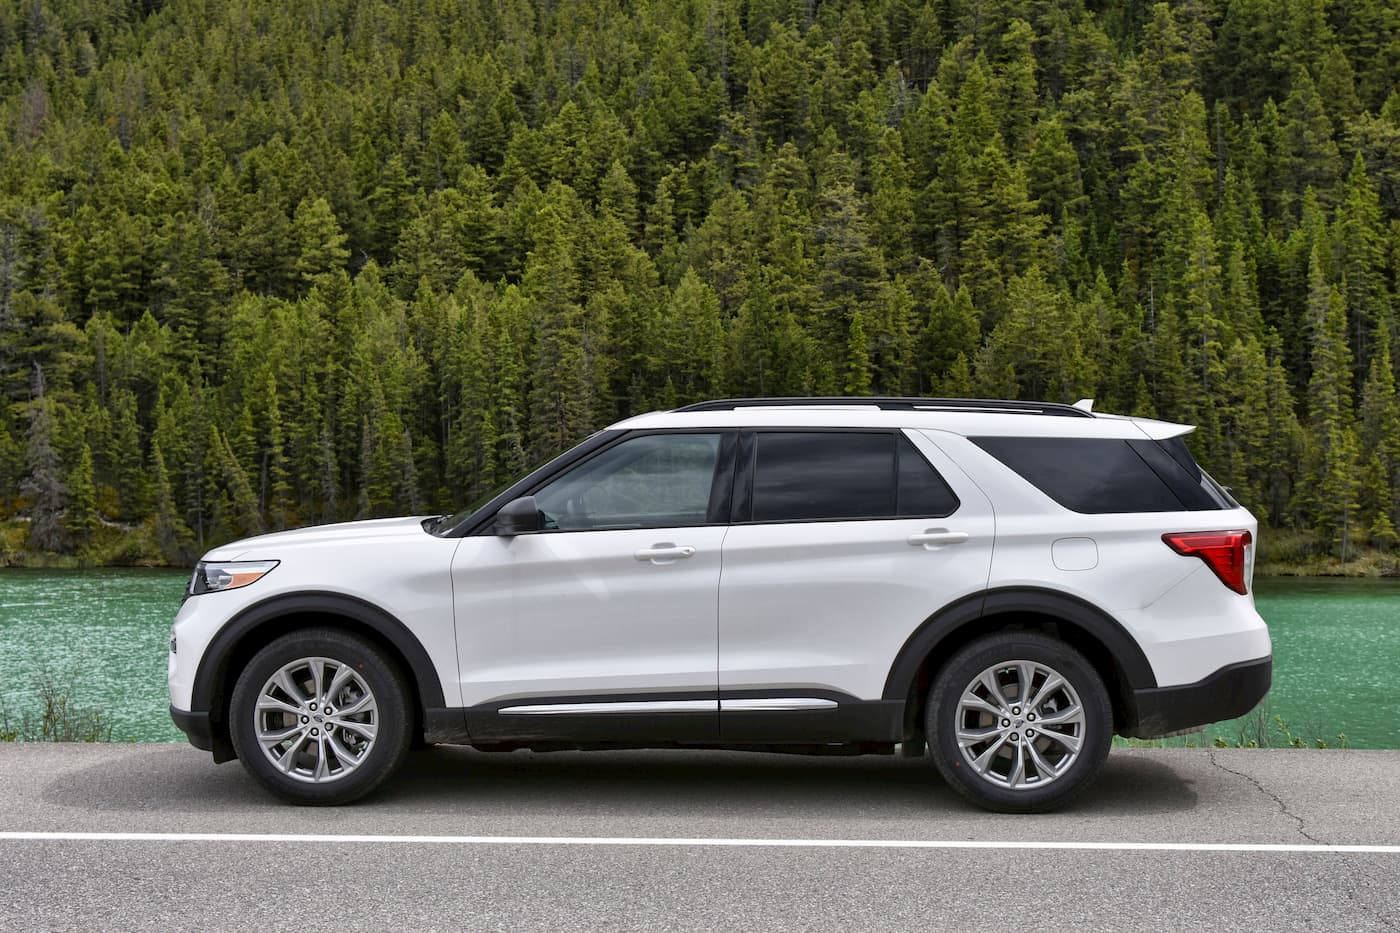 White 2020 Ford Explorer Side View Shot By Lake